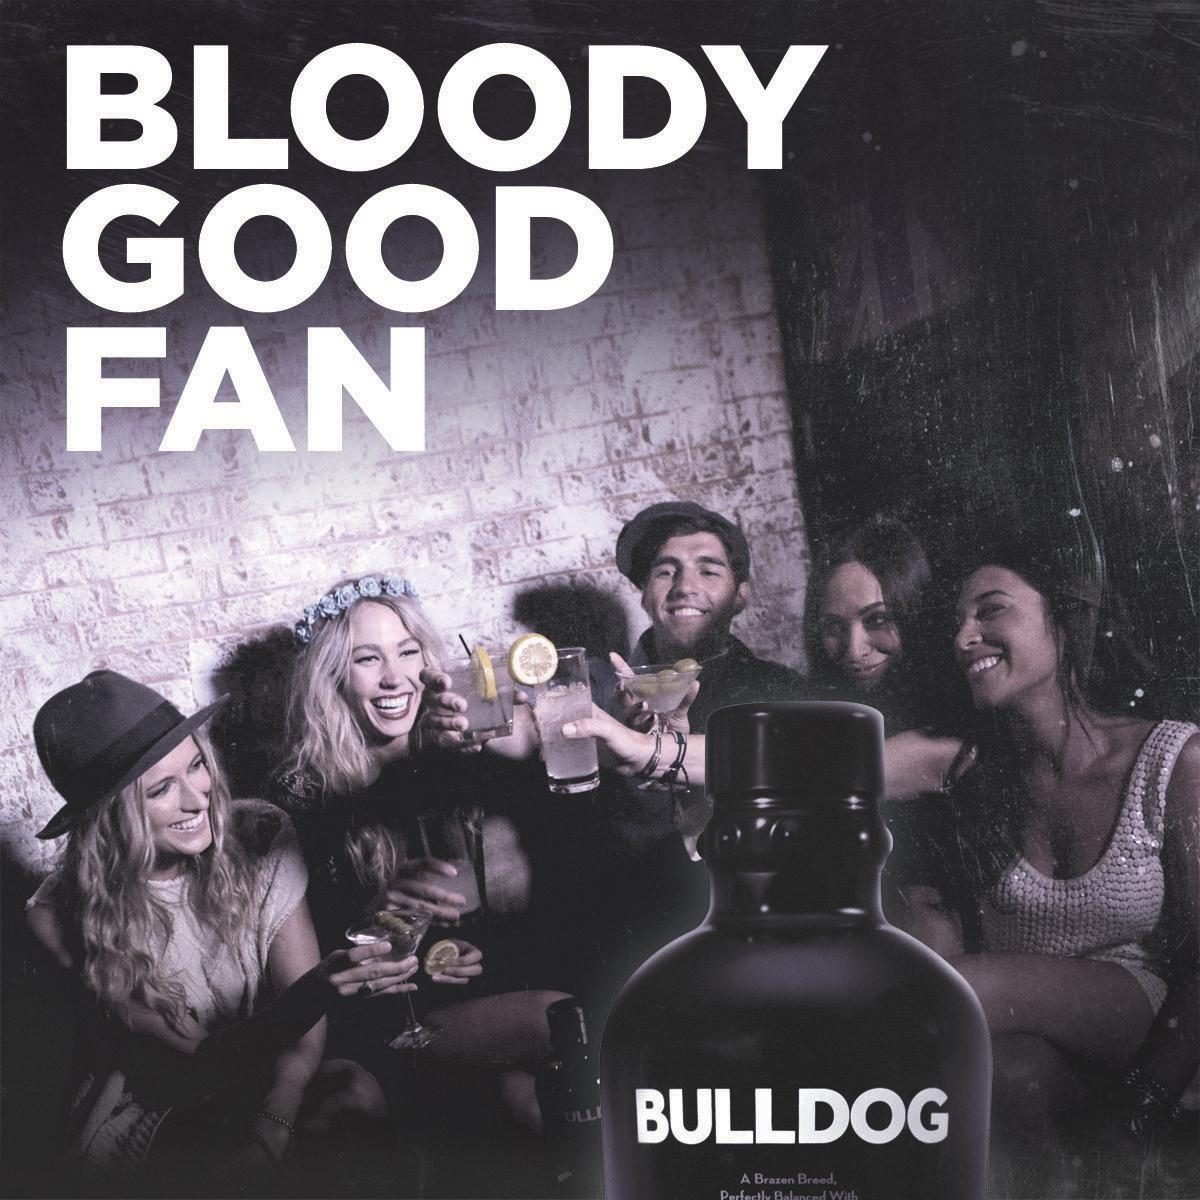 Bloody Good Fan